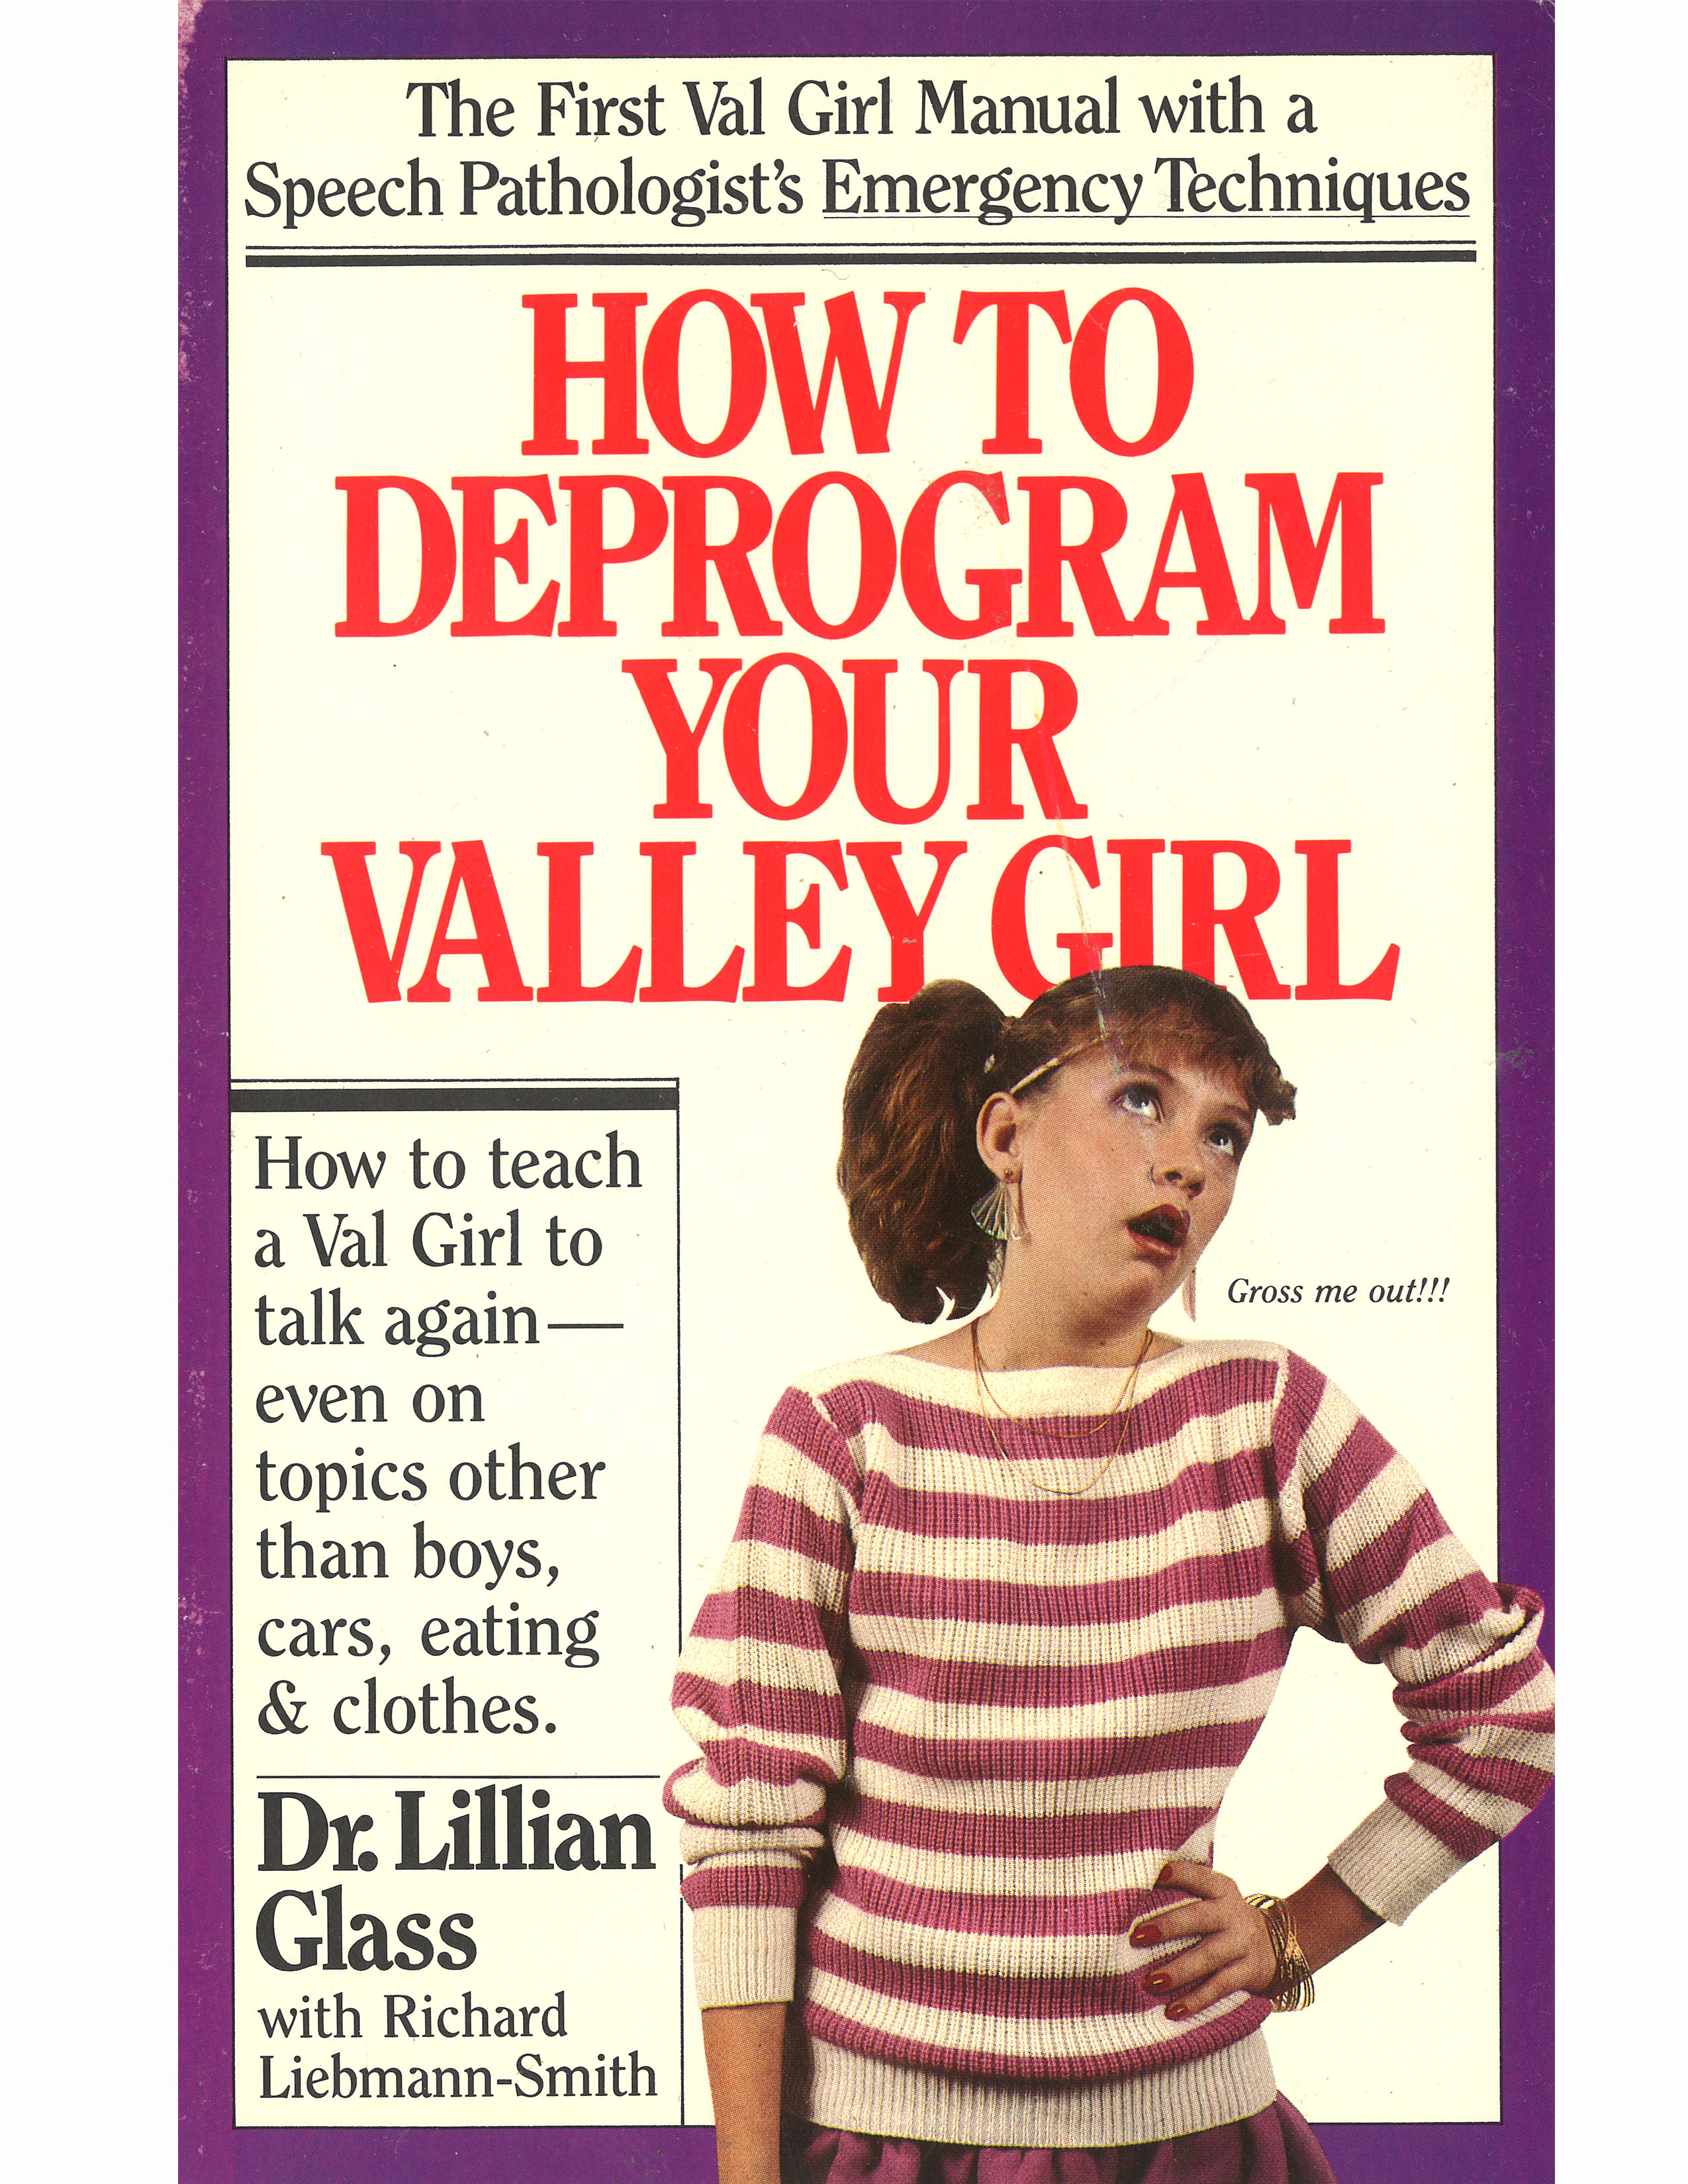 b2059e35477 How to Deprogram Your Valley Girl, an Ebook by Lillian Glass